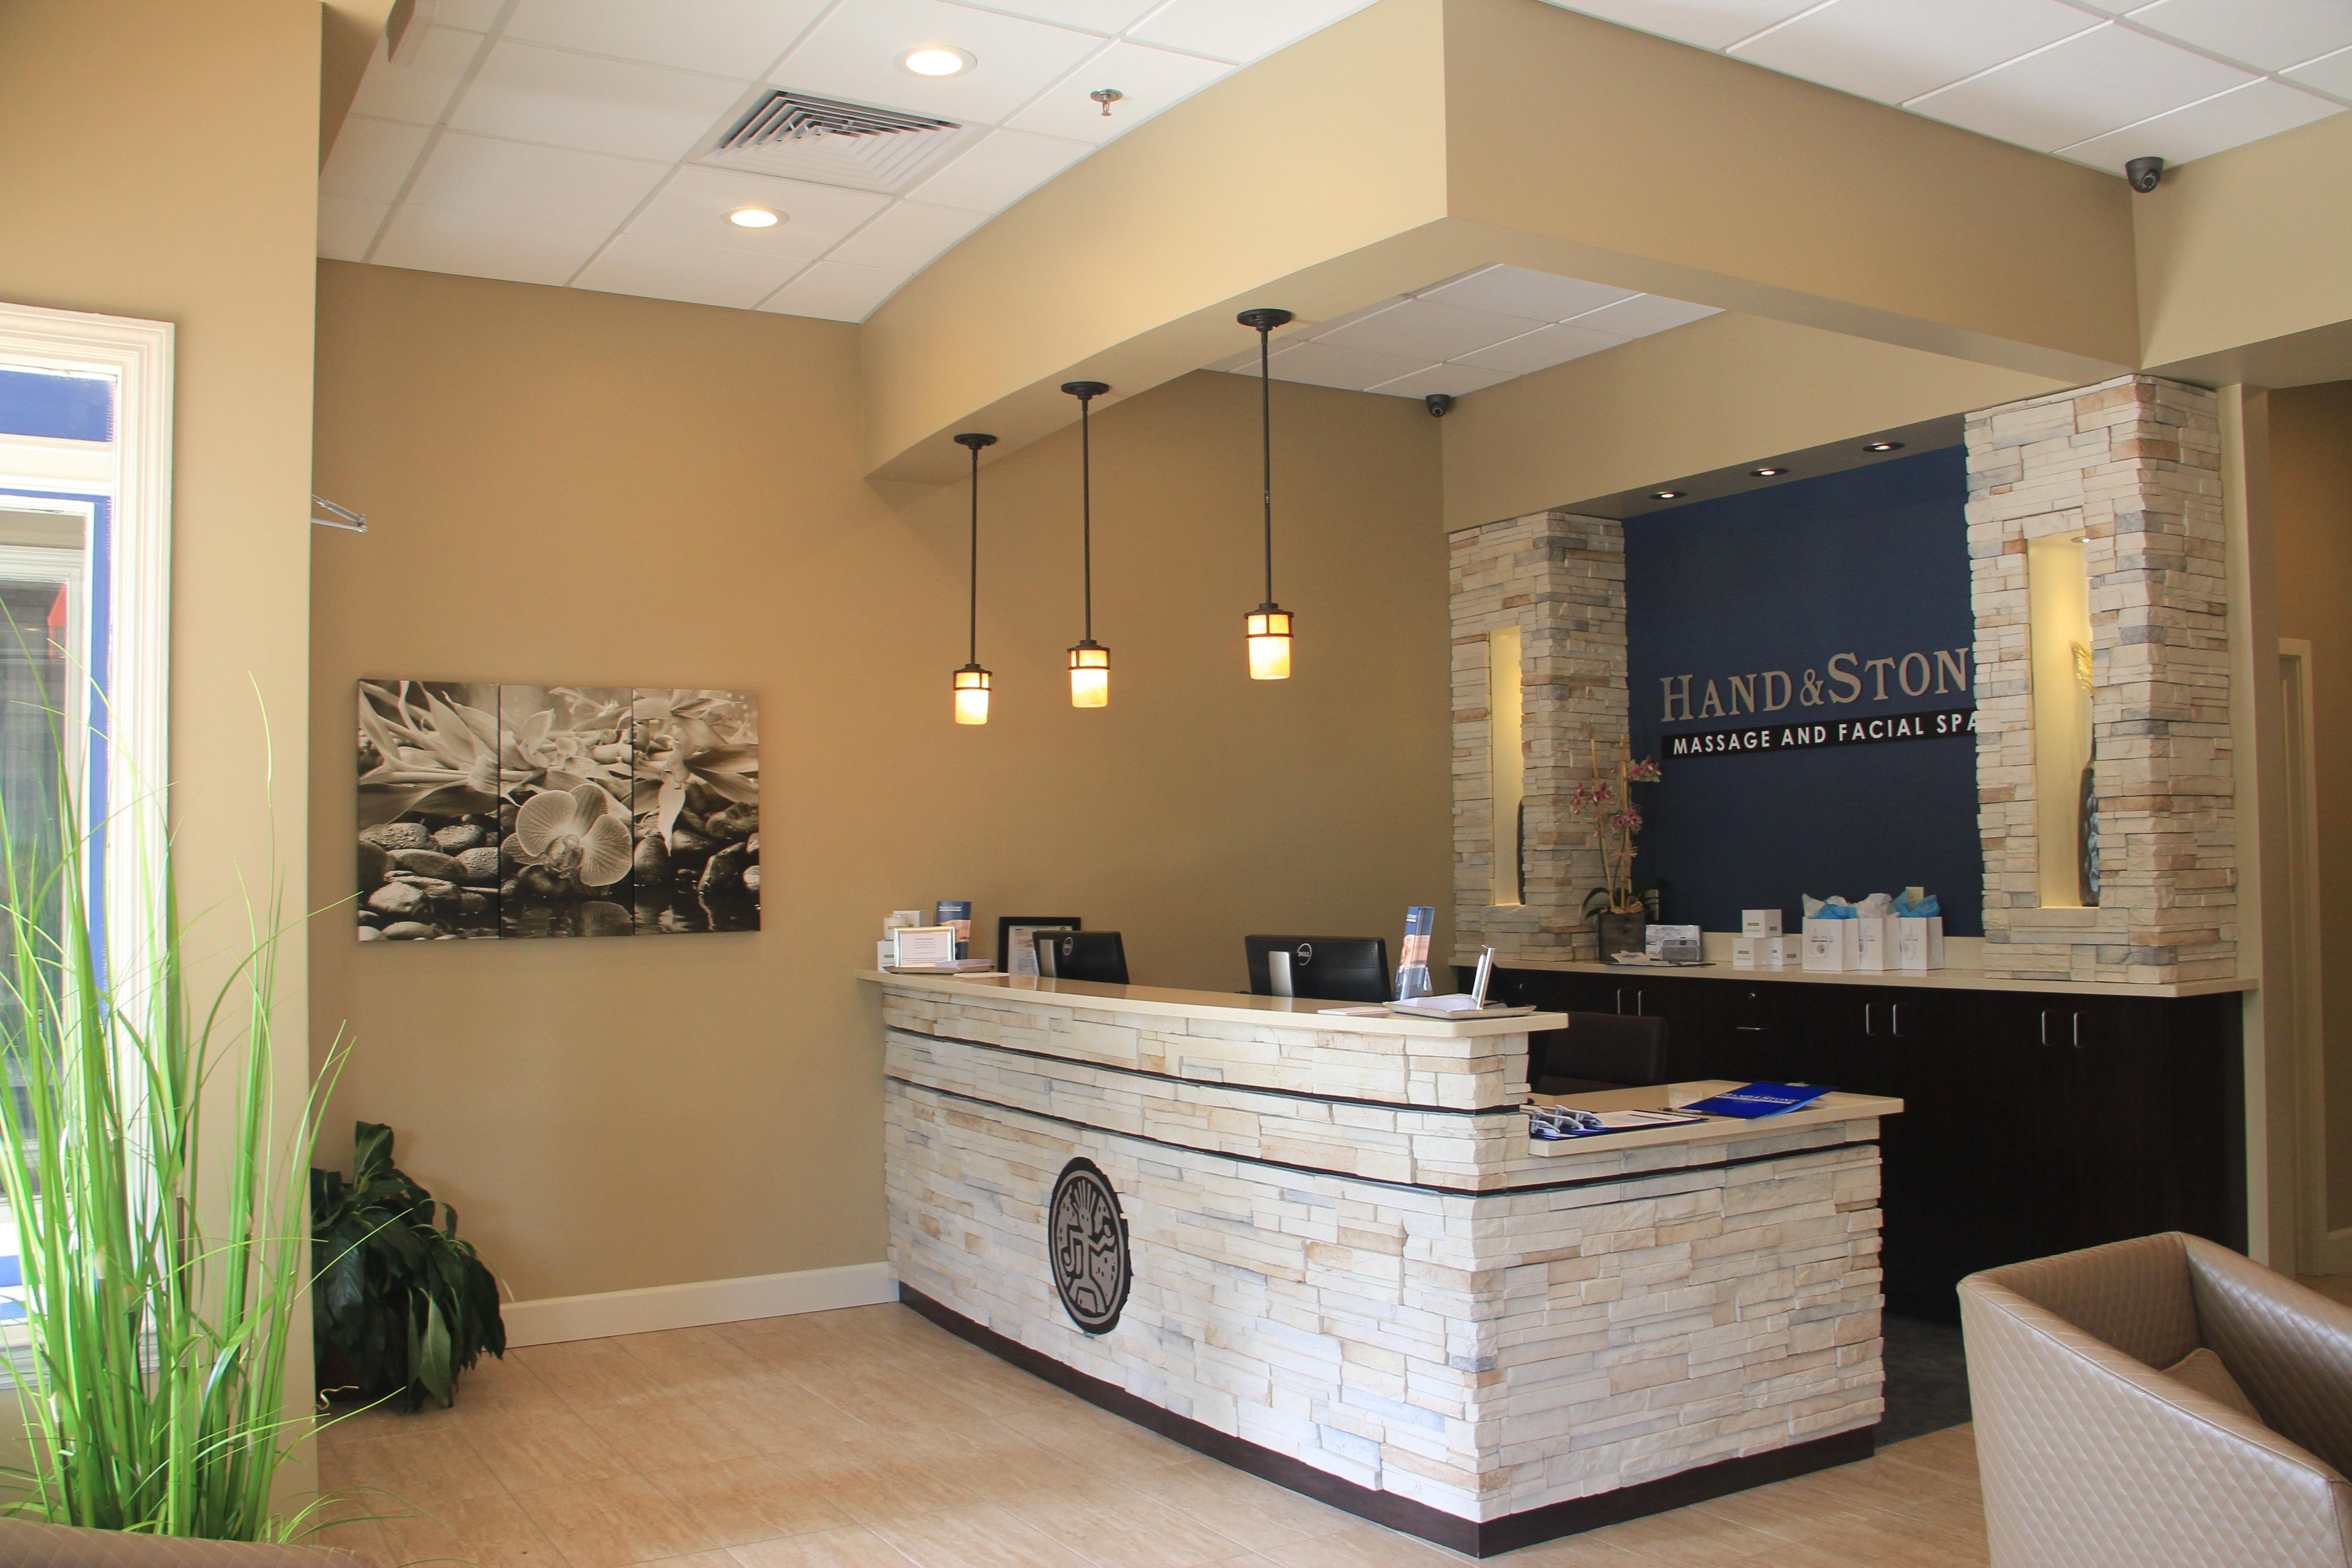 Best Spa In The Winter Park Fl Area